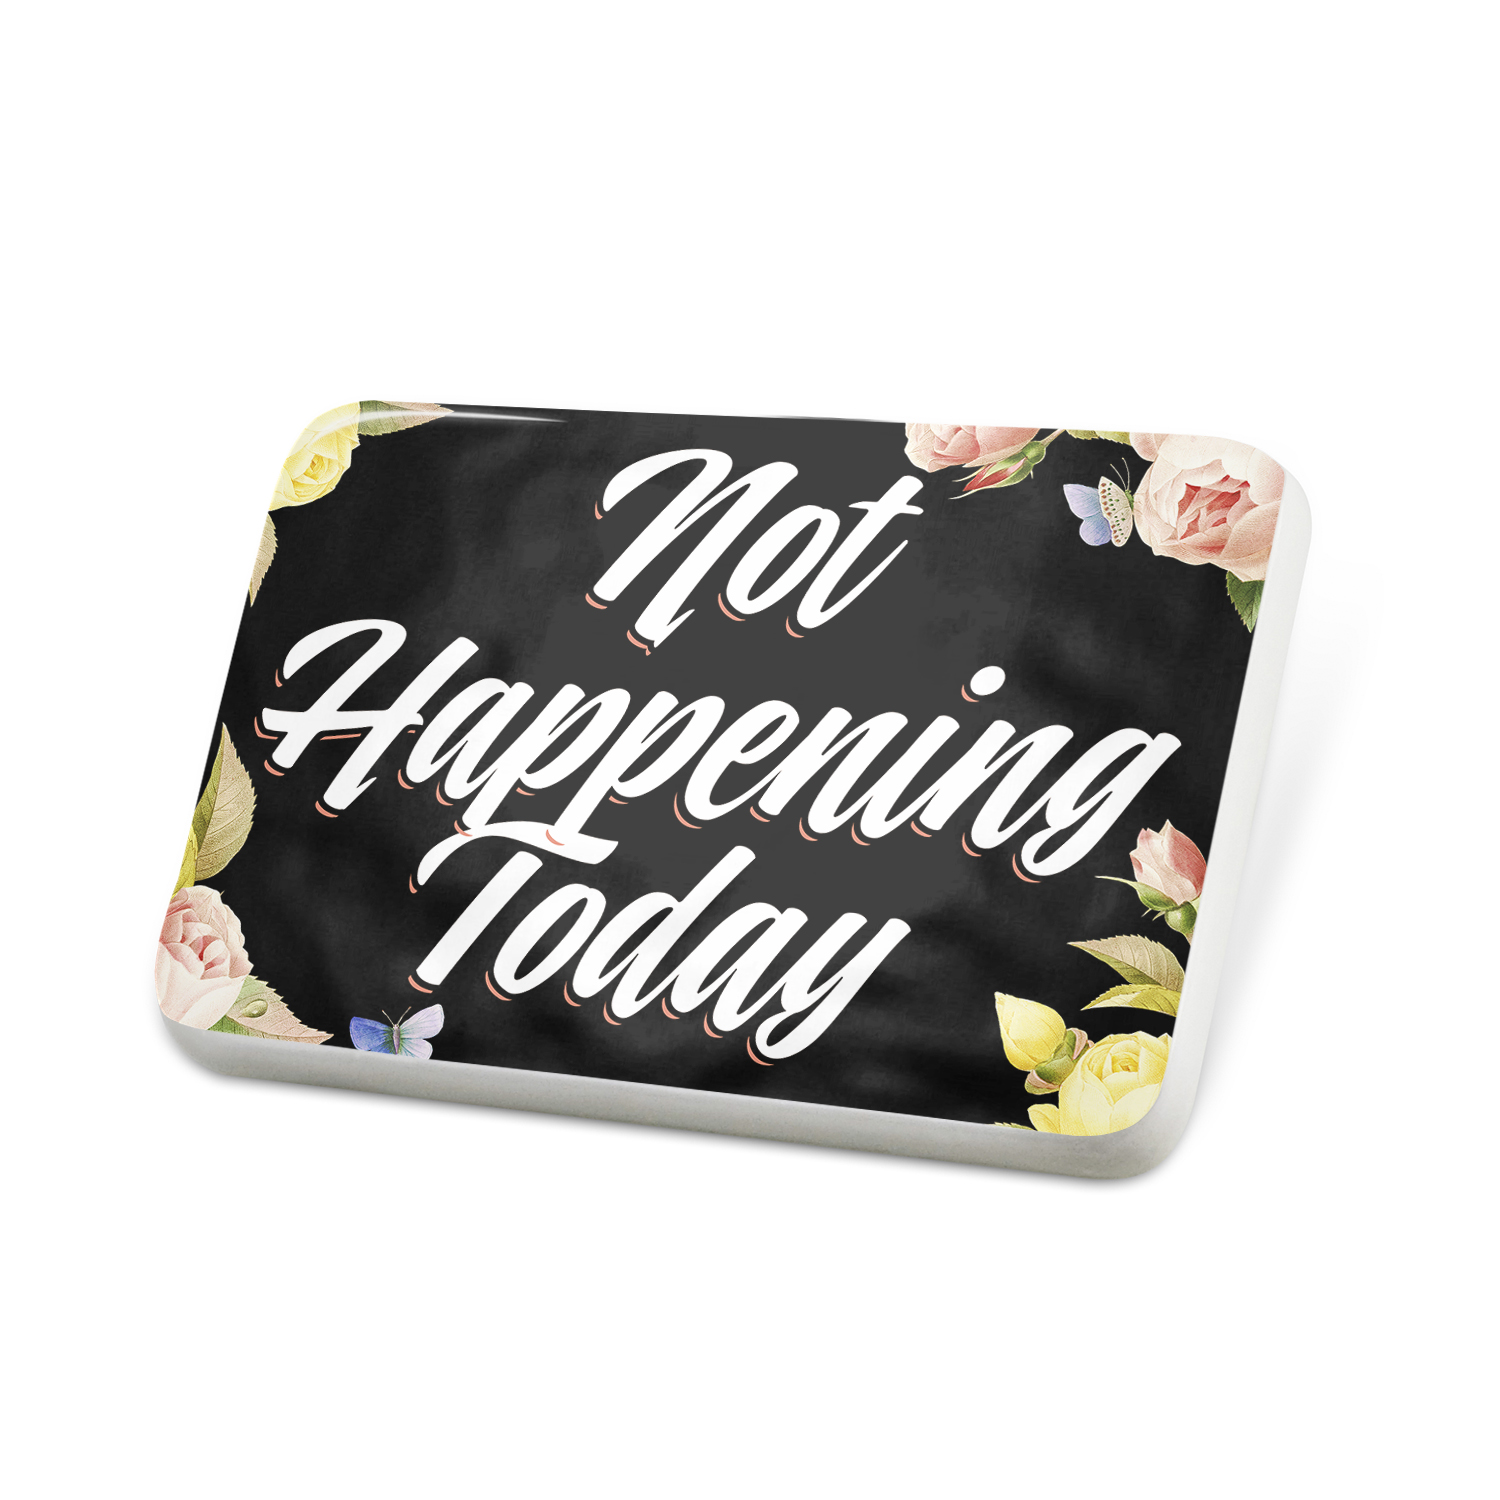 Porcelein Pin Floral Border Not Happening Today Lapel Badge – NEONBLOND